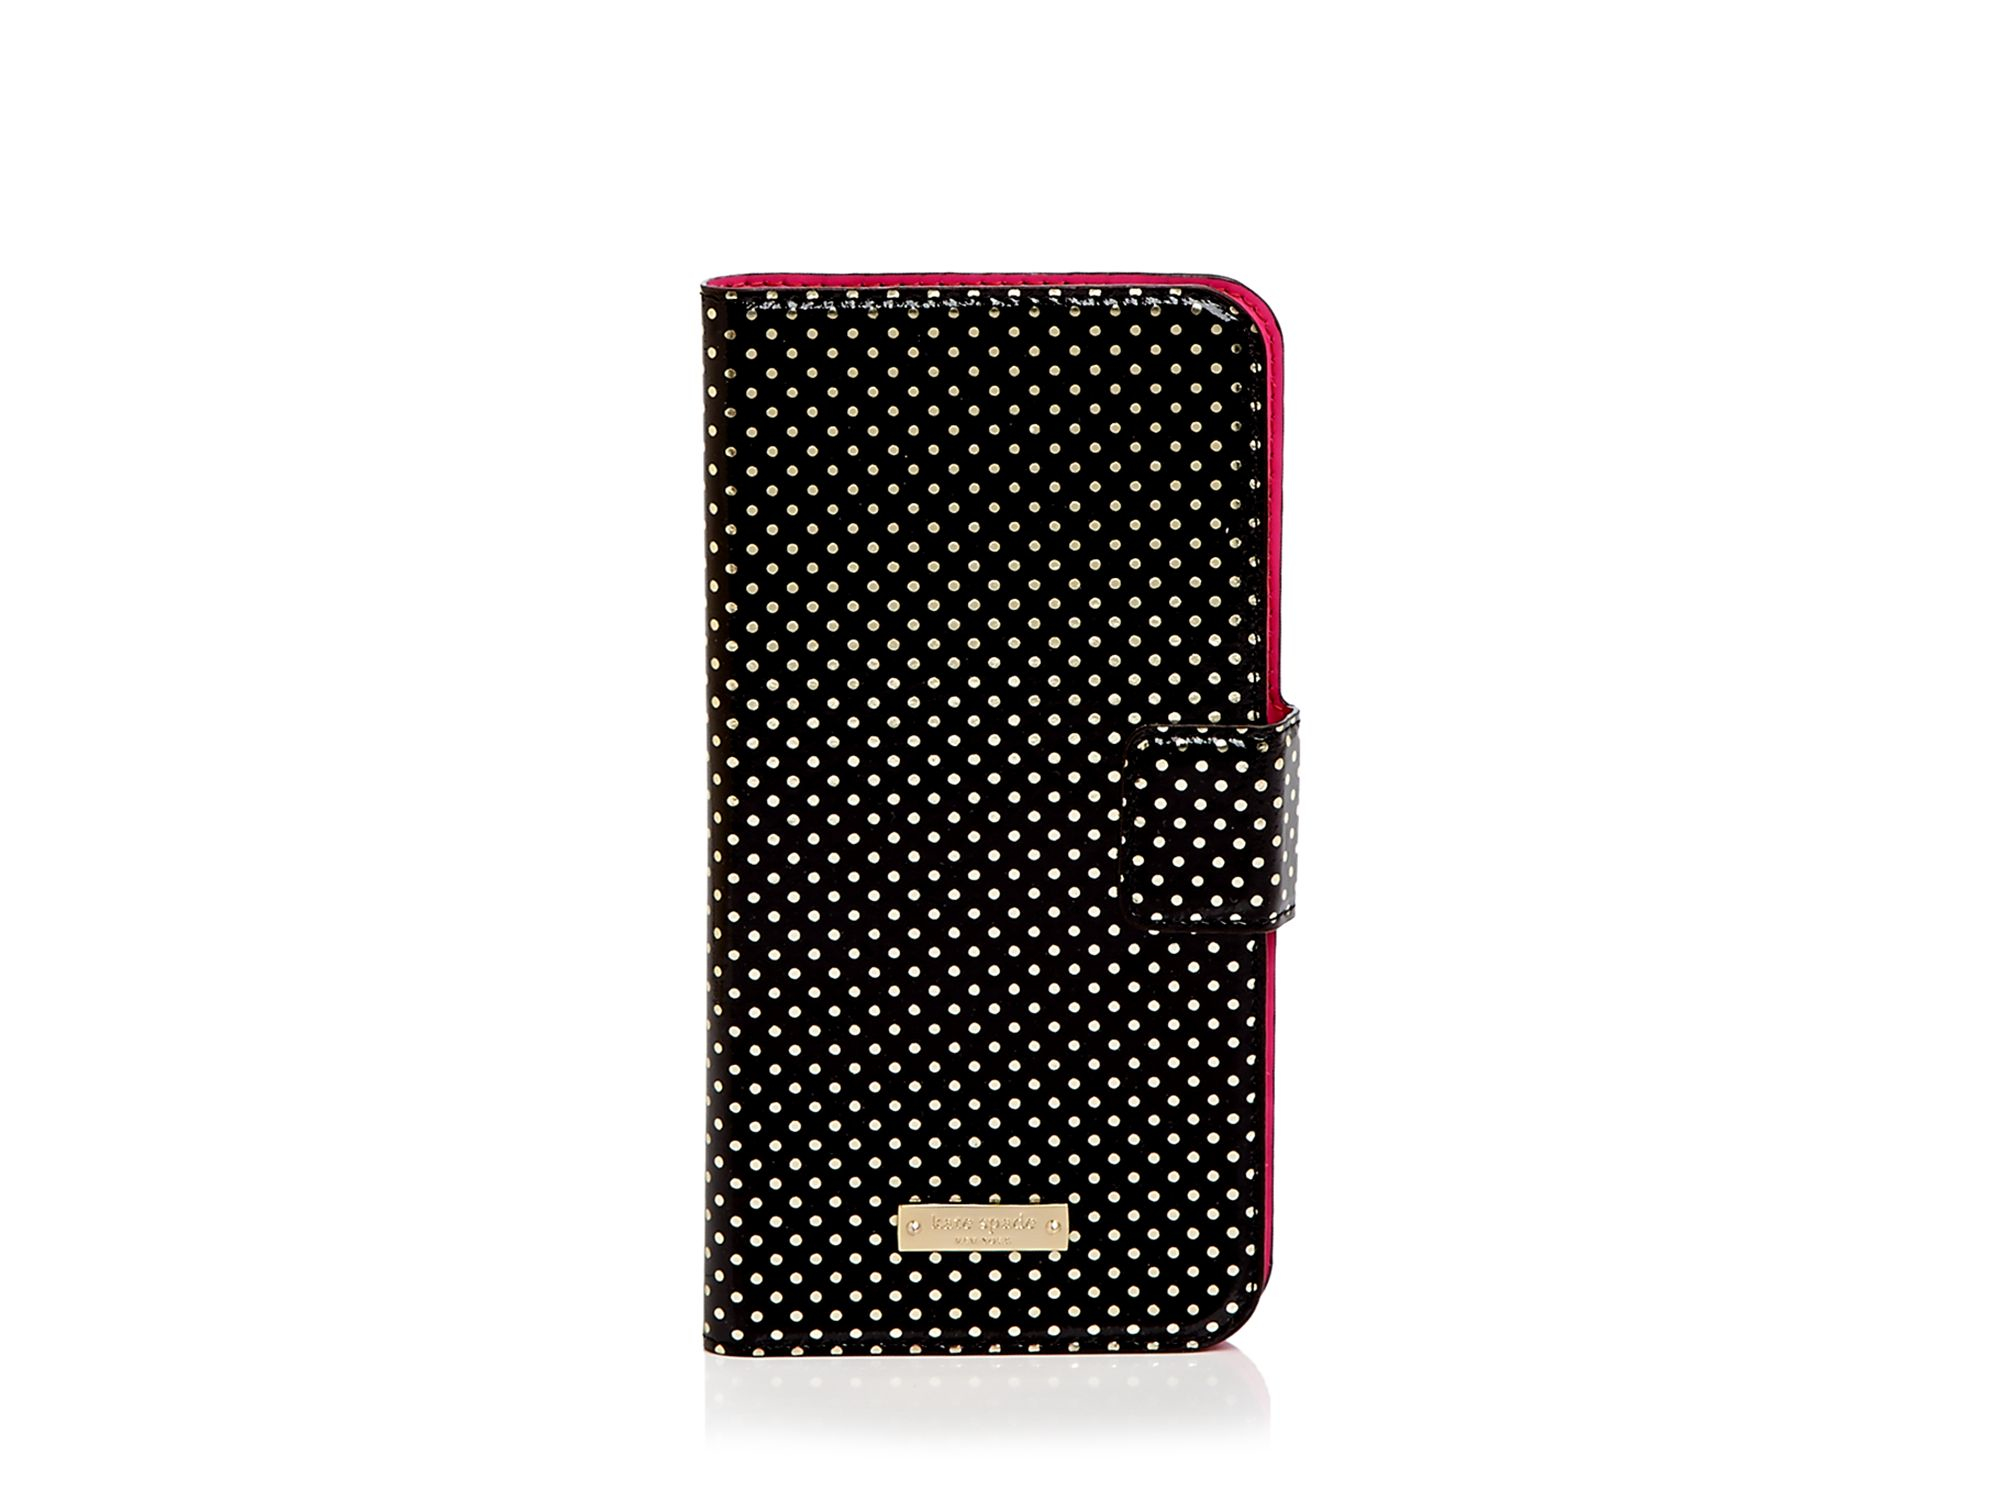 the best attitude 2ea74 c0422 kate spade new york Black Tiny Dot Folio Iphone 6 Plus Case